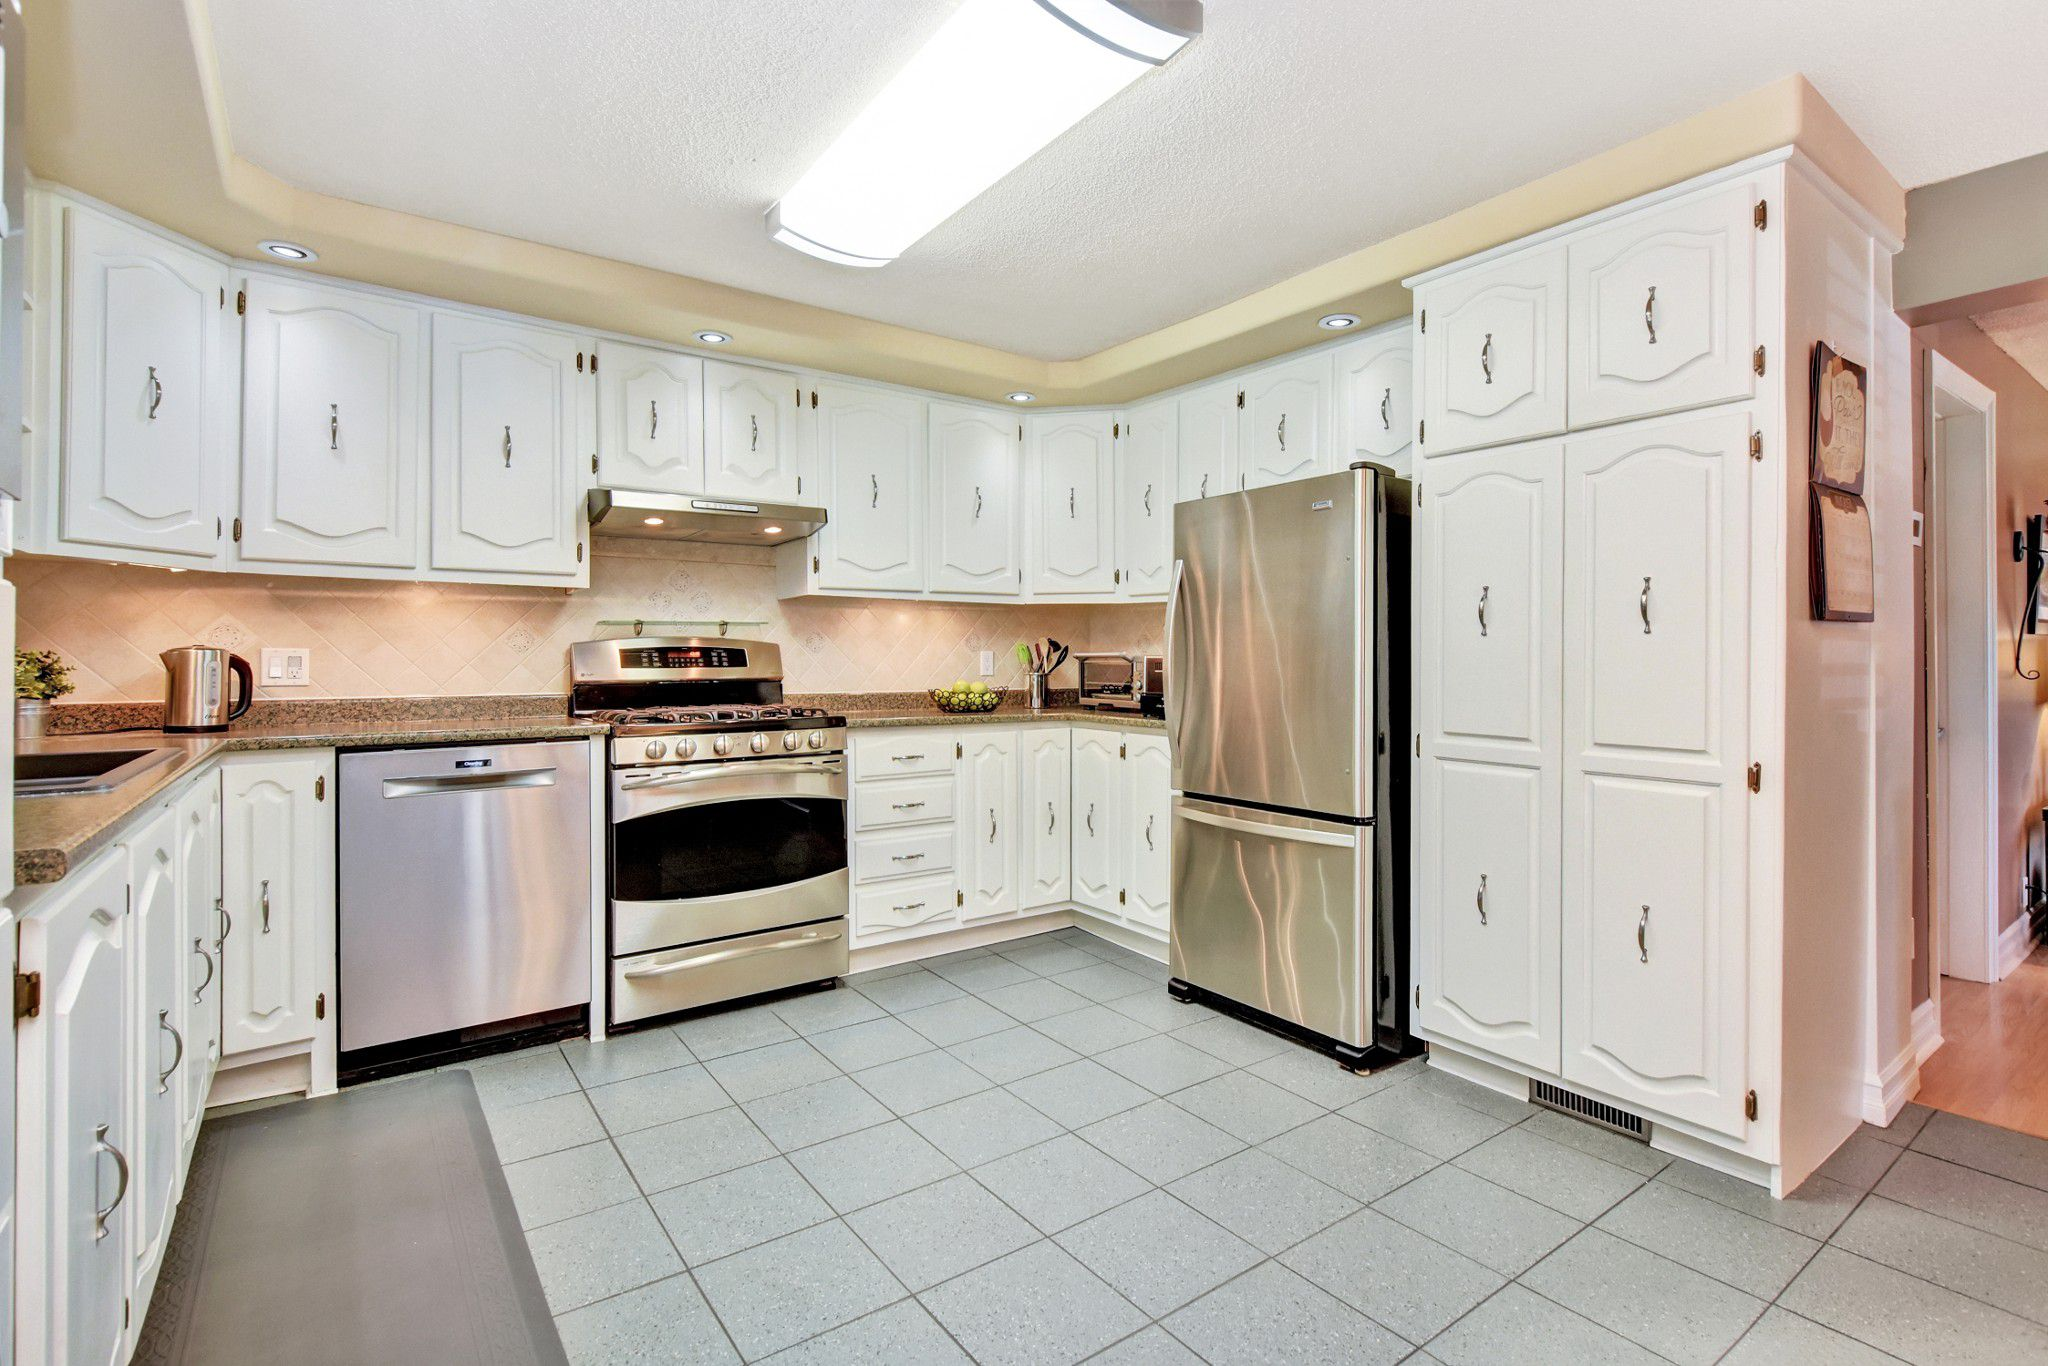 Photo 13: Photos: 5000 Dunning Road in Ottawa: Bearbrook House for sale